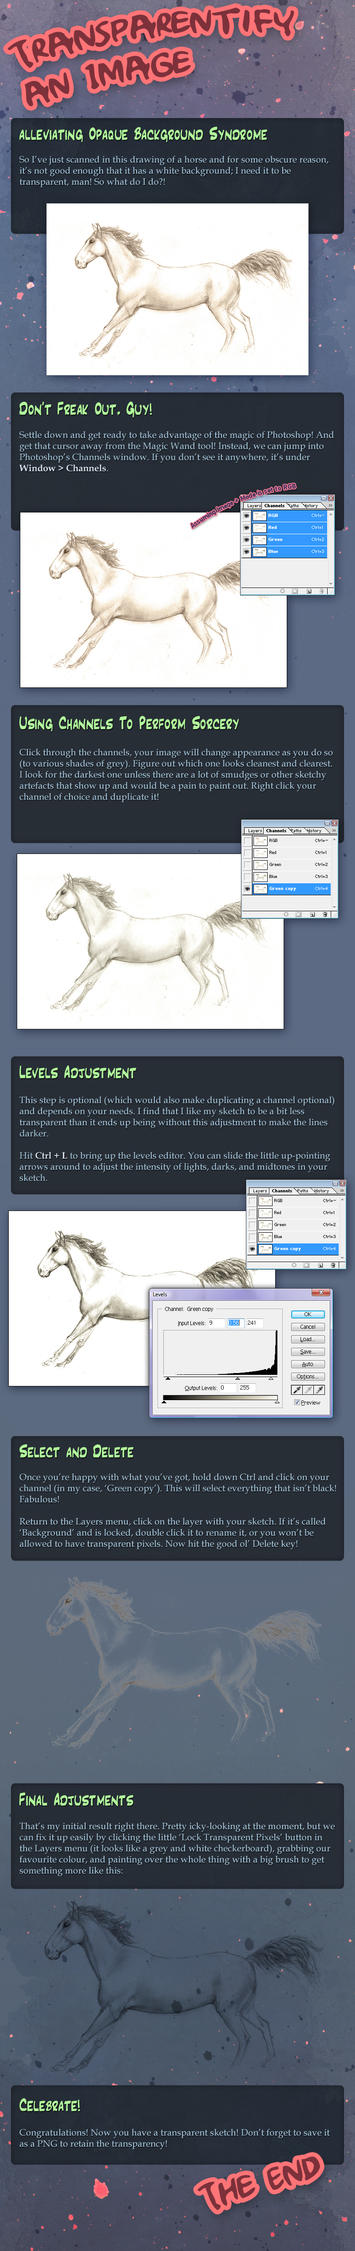 Transparentify White Backgrounds by Firequill